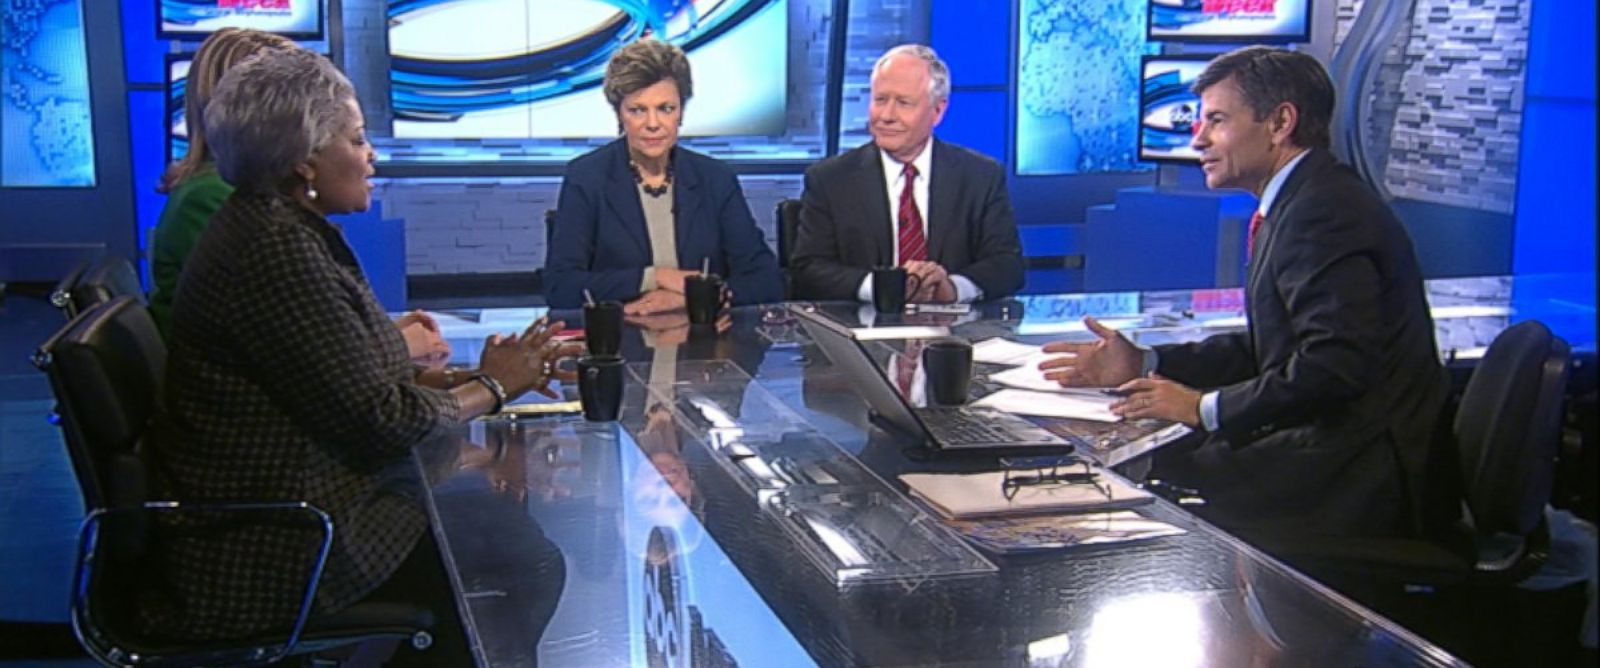 PHOTO: ABC News Contributor and Democratic Strategist Donna Brazile, ABC News Contributor and The Weekly Standard Editor Bill Kristol, ABC News Cokie Roberts, and Republican Strategist and CNBC Contributor Sara Fagen on This Week